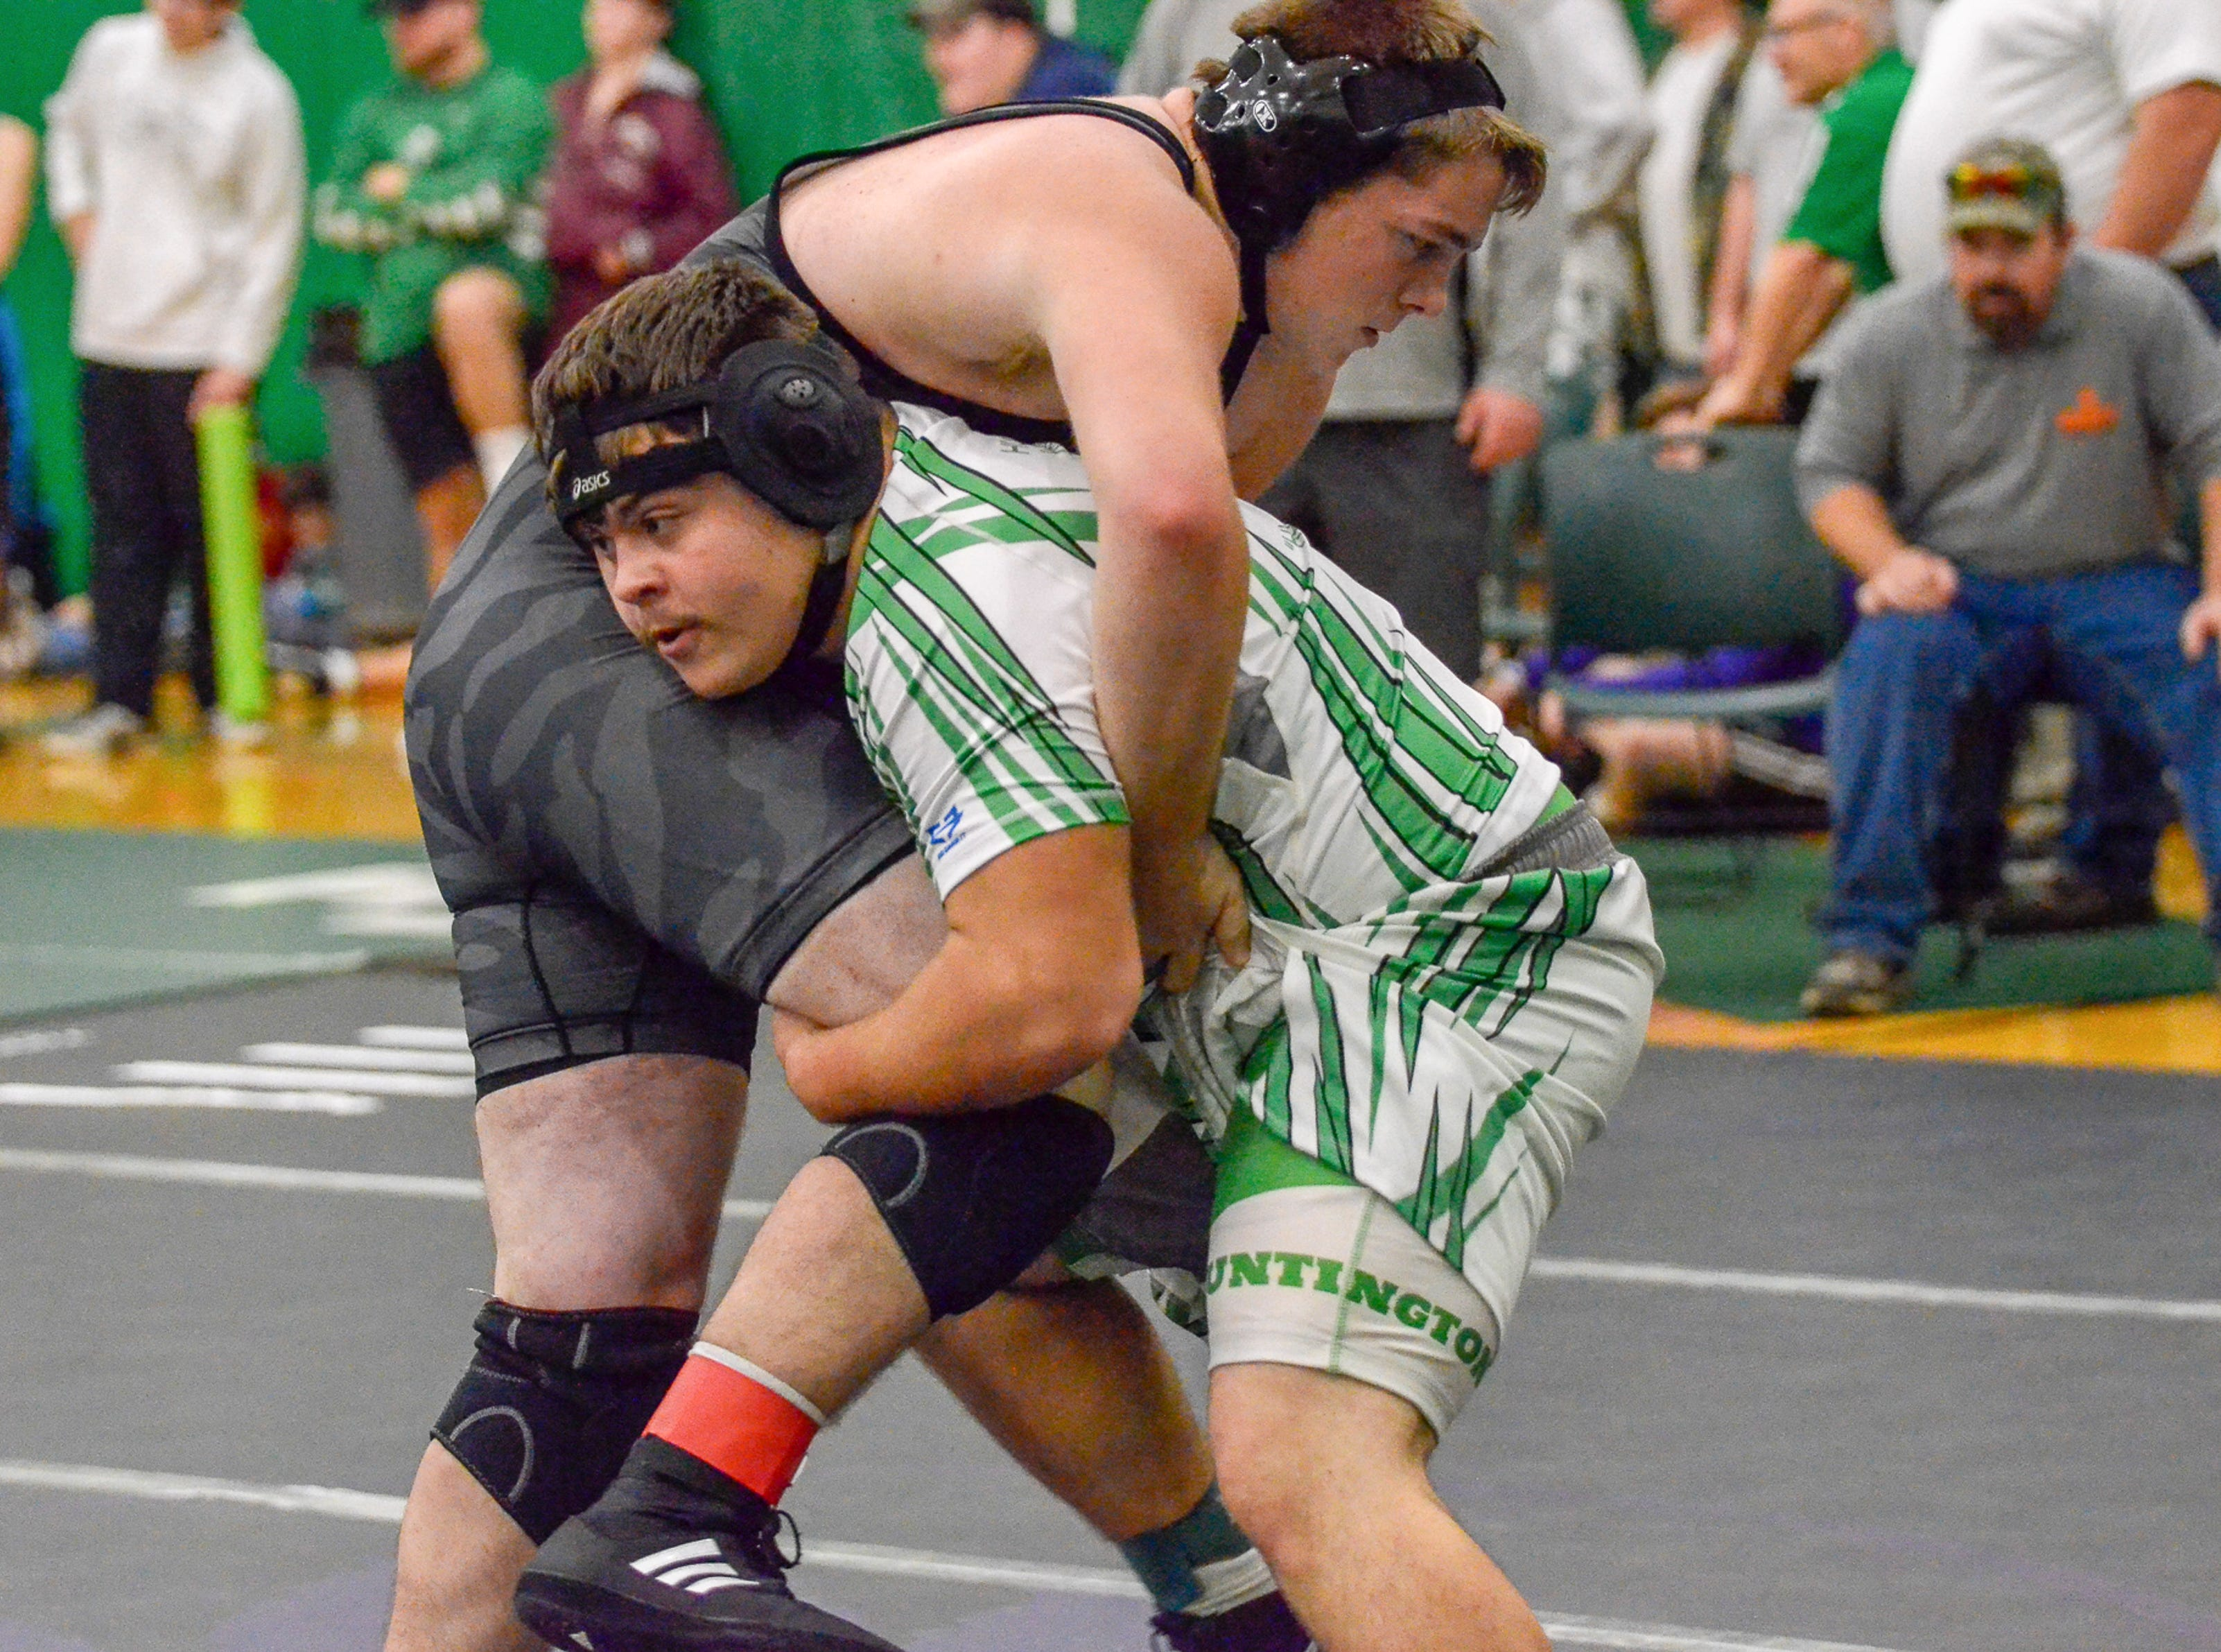 Huntington High school participated in the Fairland Invitational on Saturday, December 1, 2018, in Proctorville, Ohio. Huntington placed third overall at the tournament.